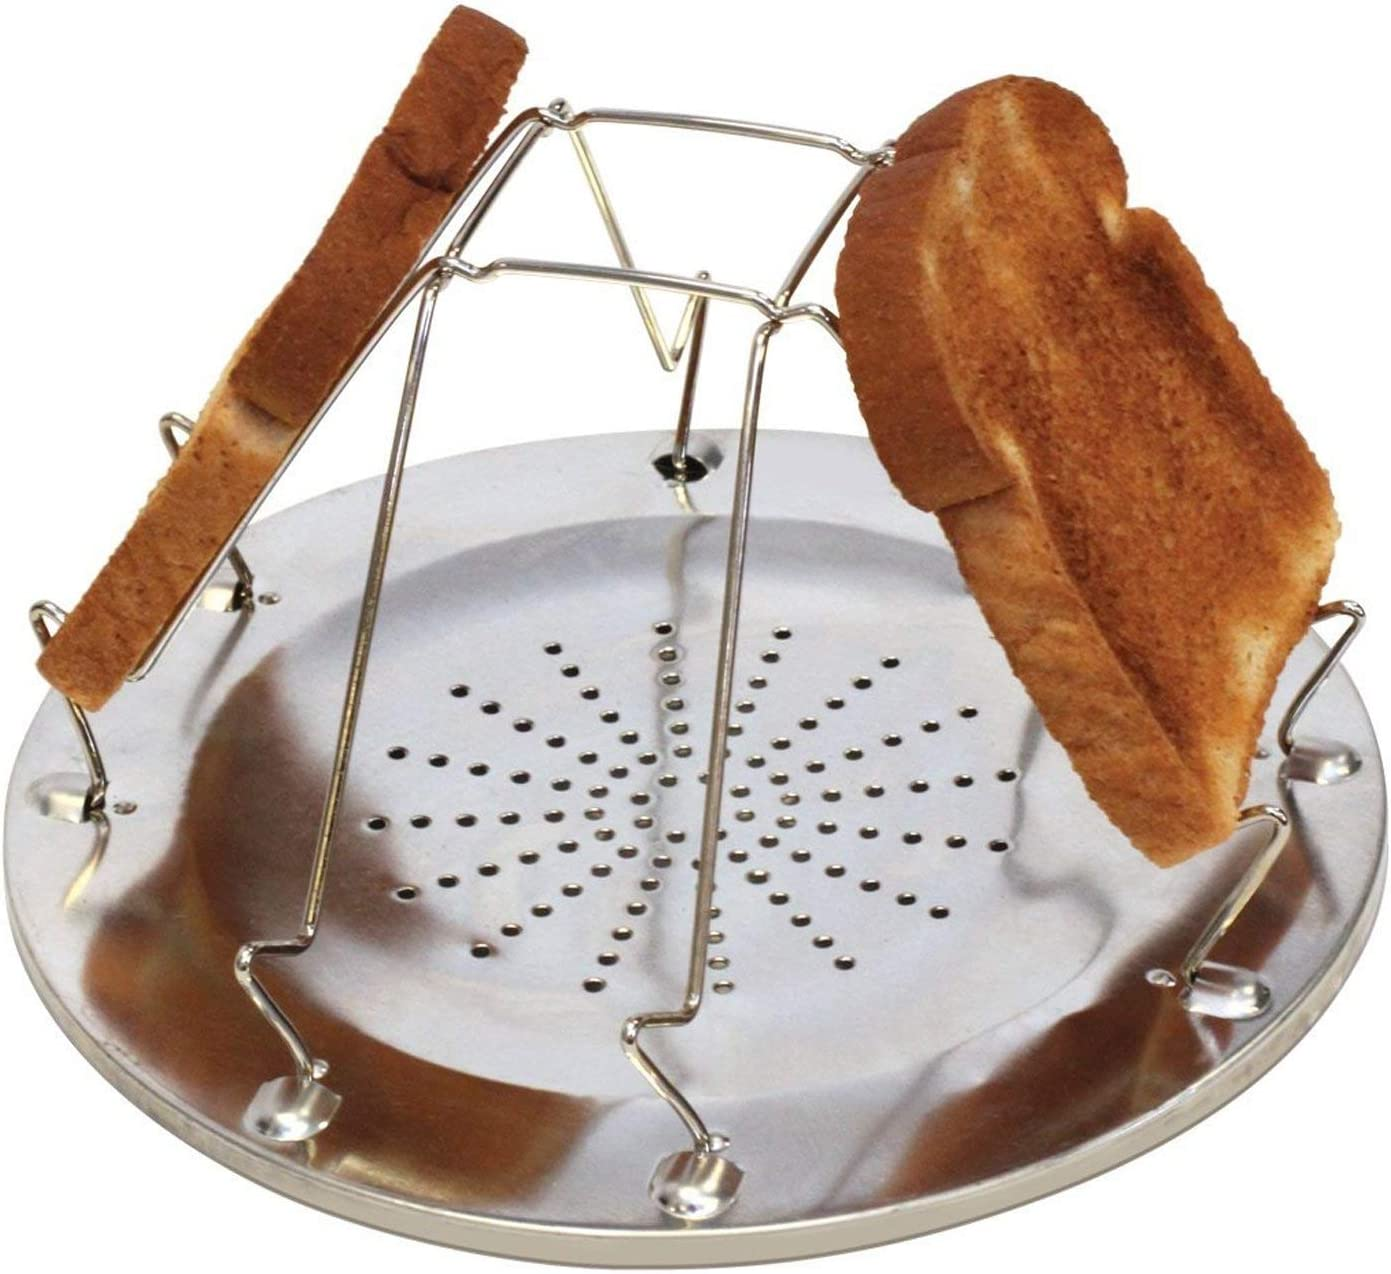 ASR Outdoor Stainless Steel Portable Folding Open Fire 4 Slice Toaster Bread Holder for Camping Backpacking Backcountry Breakfast